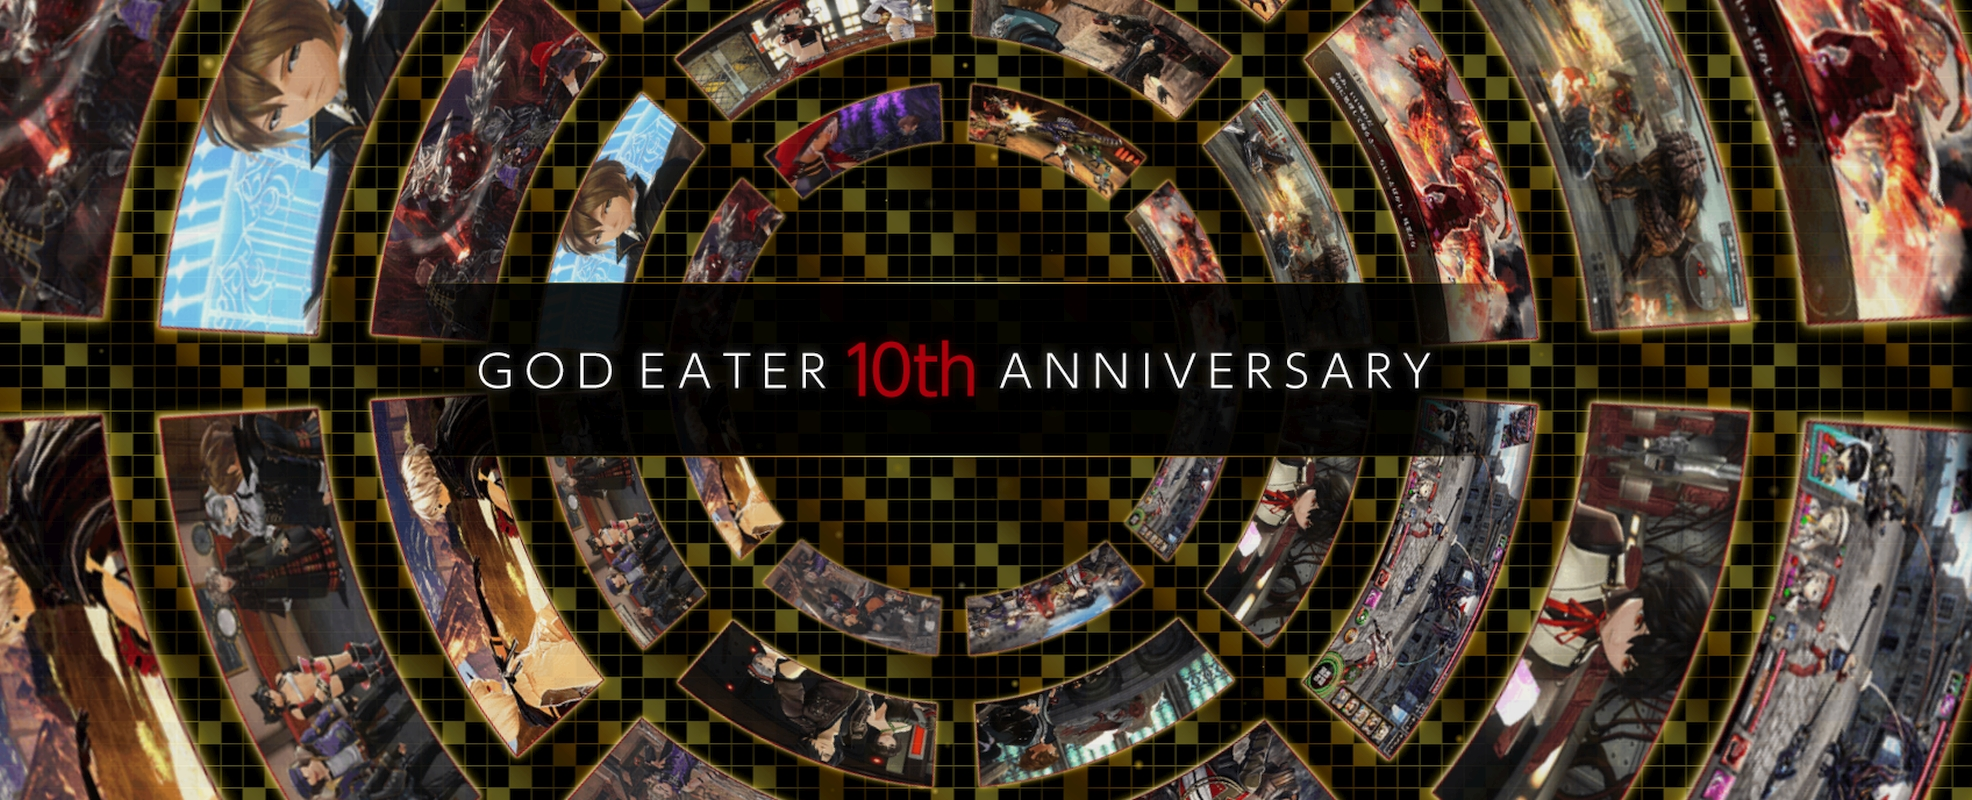 Bandai Namco Celebrates 10th Anniversary Of God Eater With Special Video And More